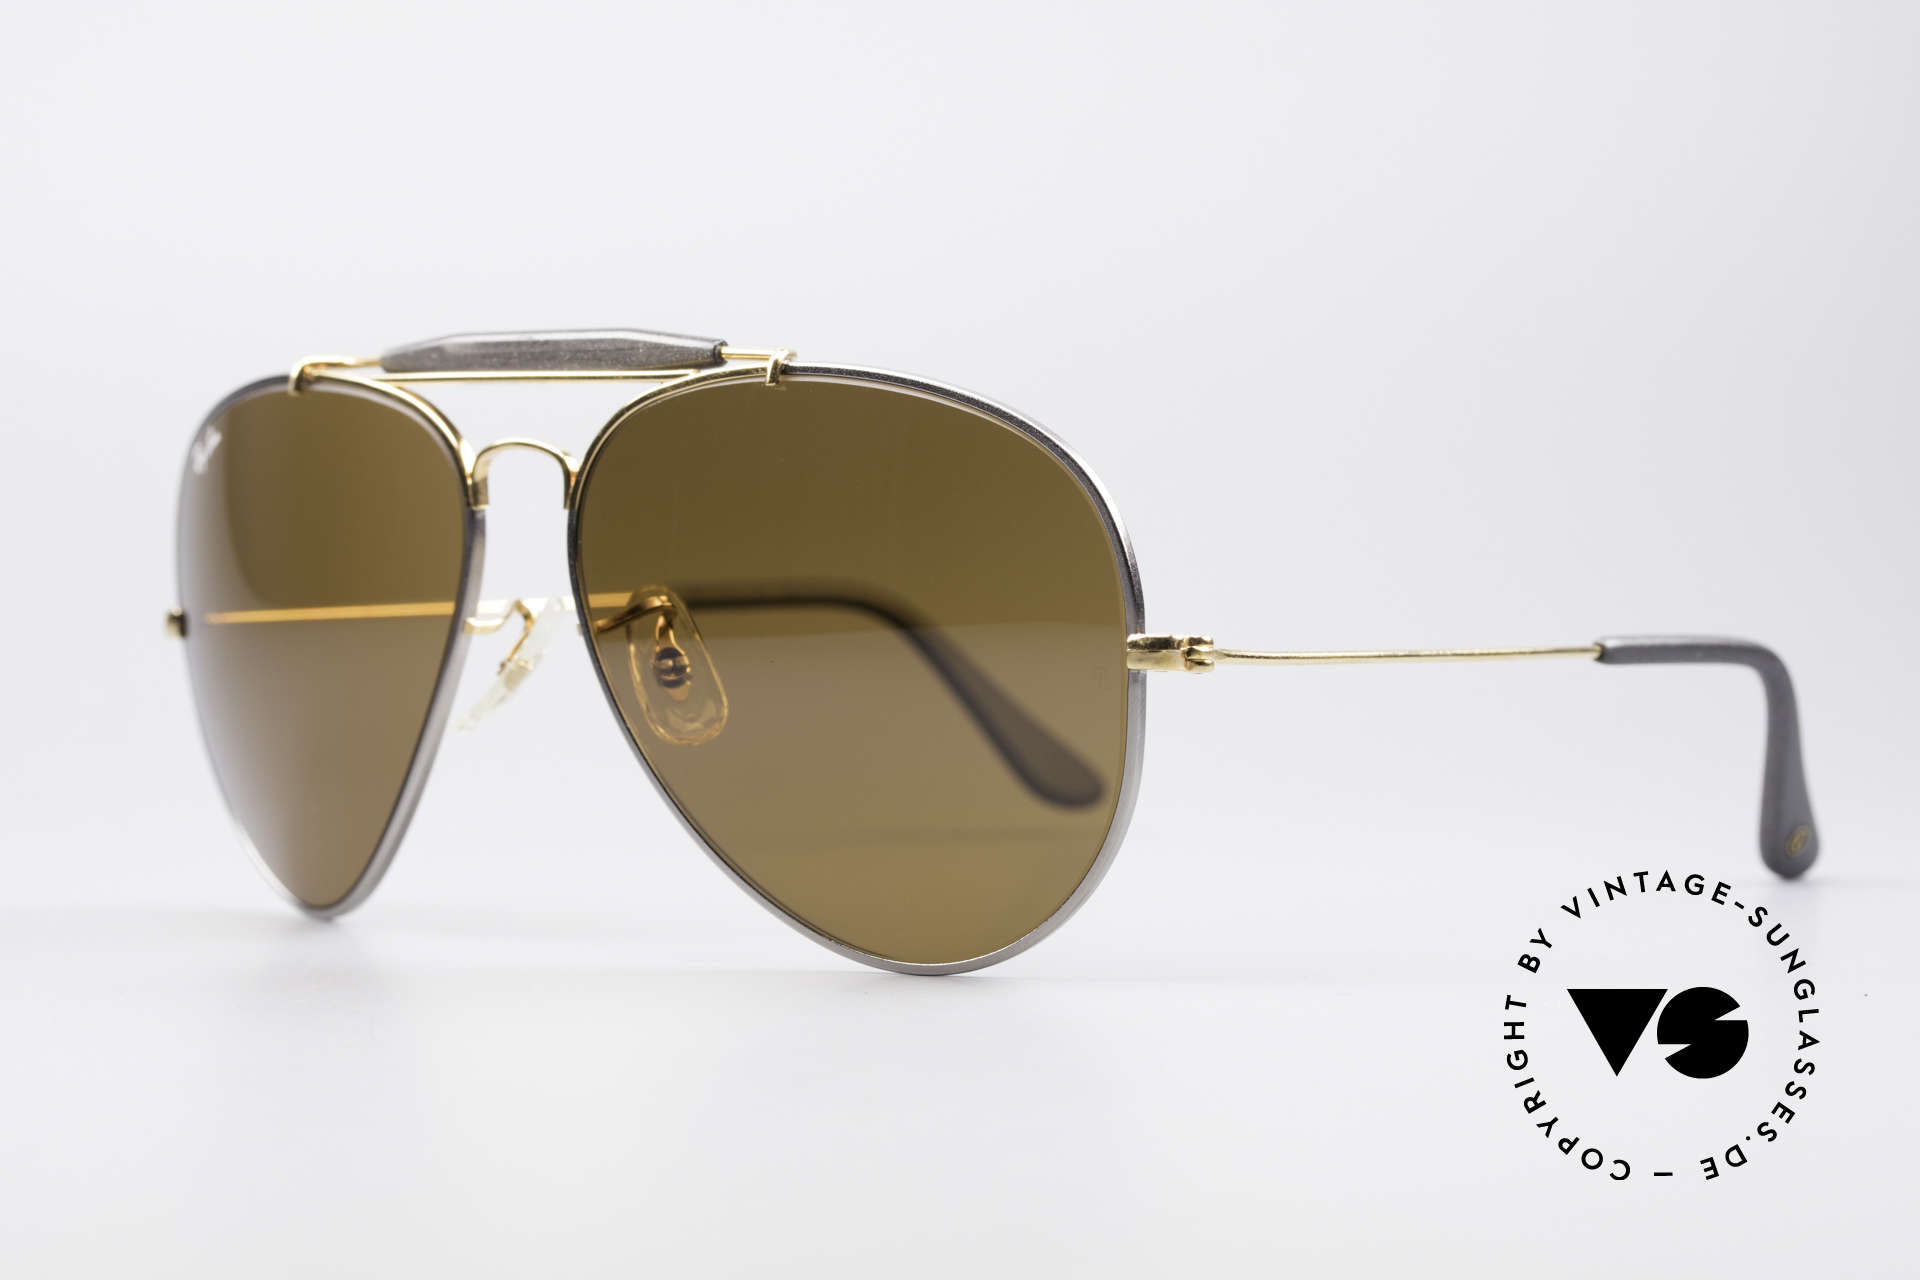 Ray Ban Outdoorsman II Precious Metals Titanium, titanium frame and 24kt gold-plated components, Made for Men